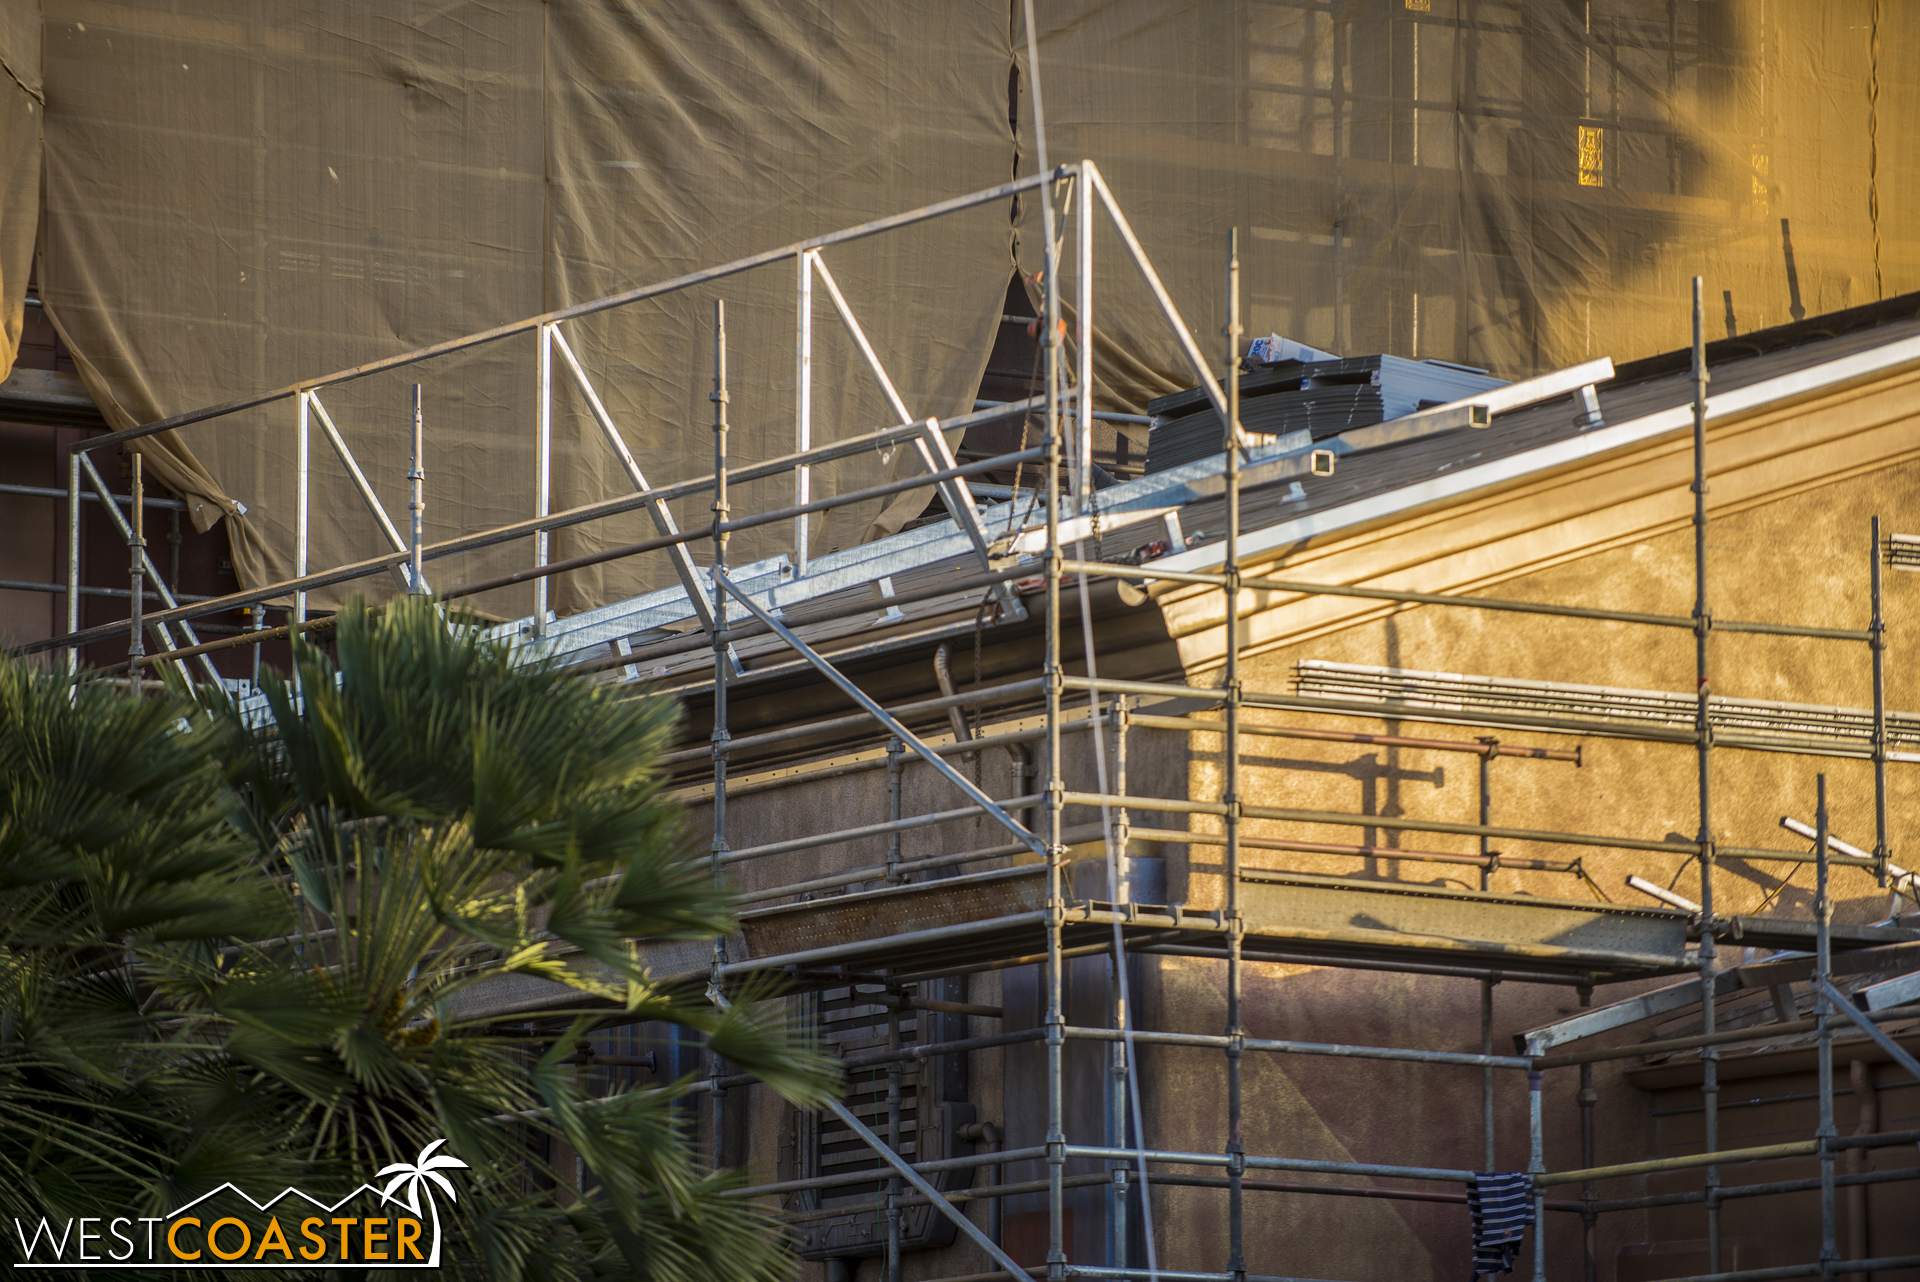 It looks like the sloped roof is getting some modifications to look less so.